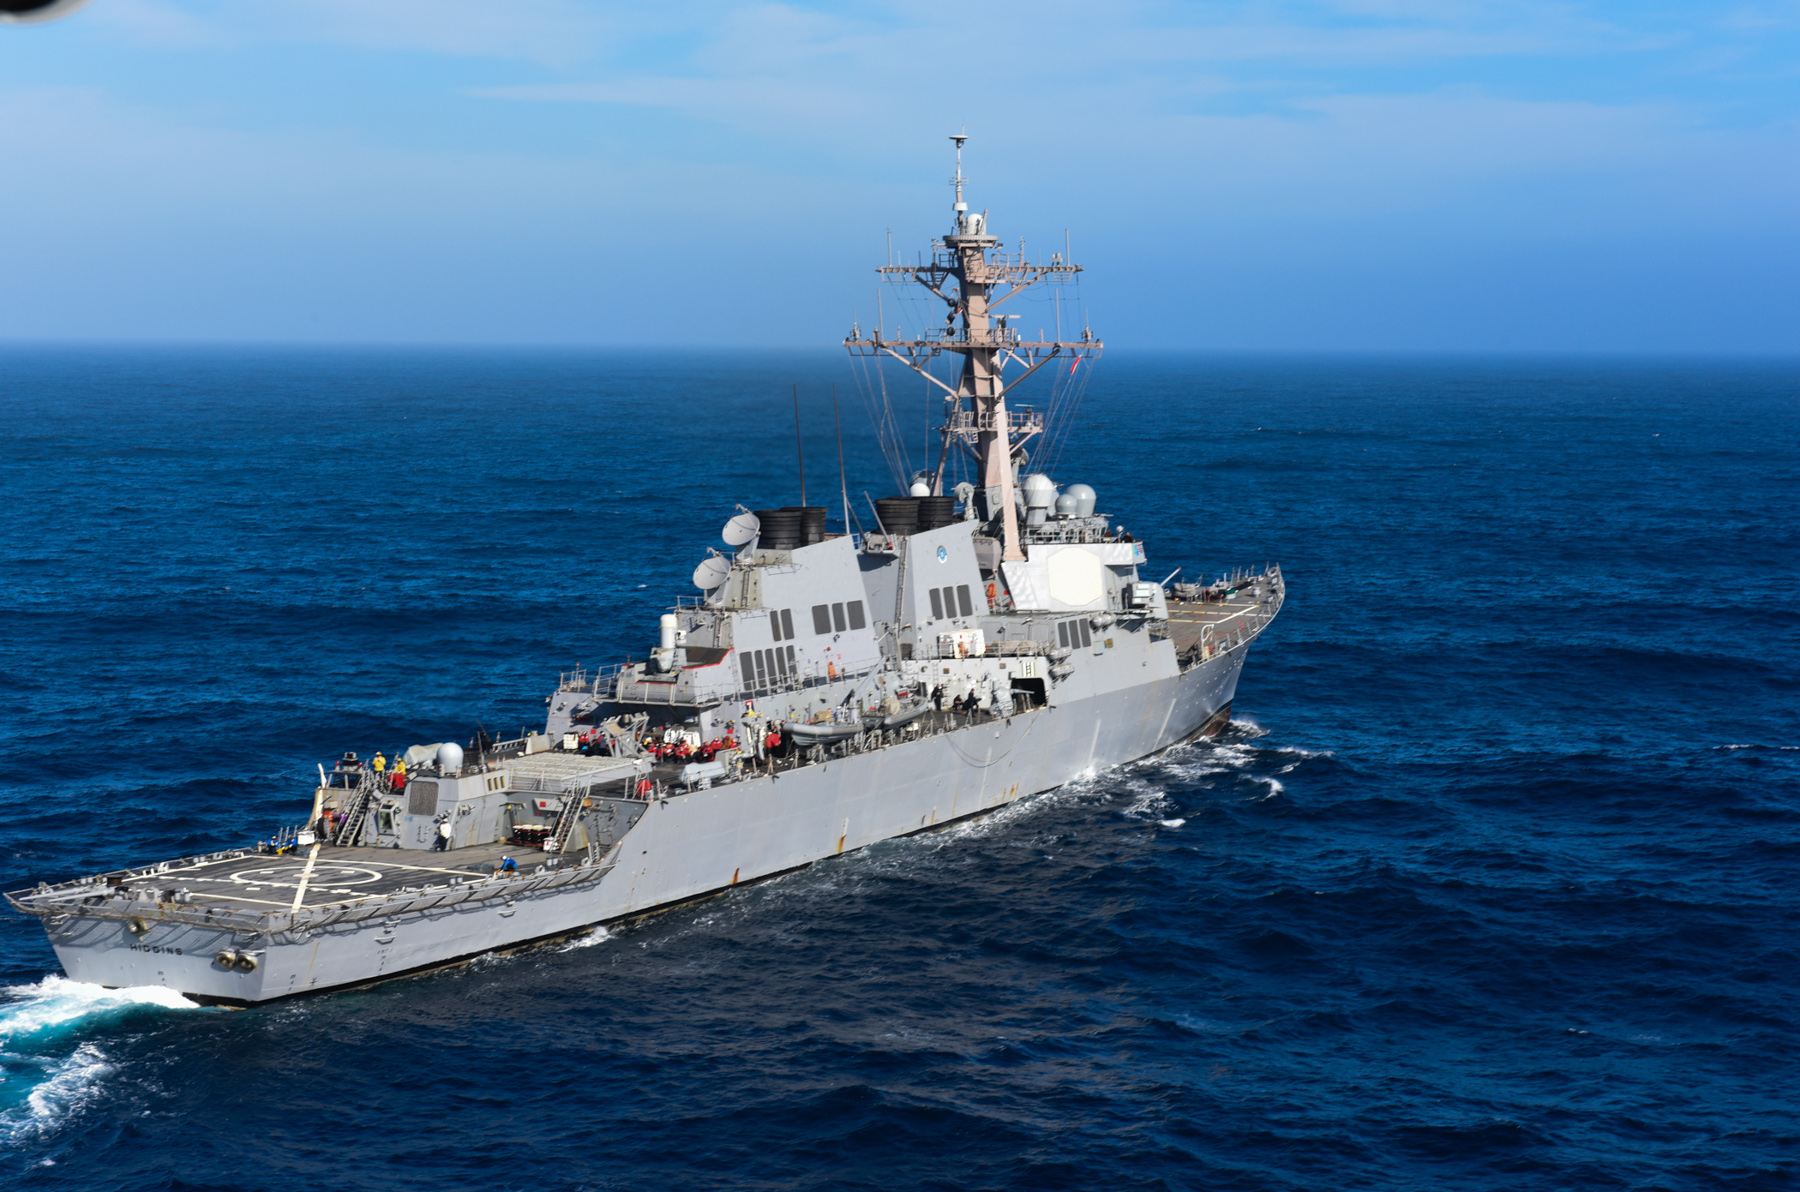 The guided-missile destroyer USS Higgins (DDG 76) is underway conducting an independent deployer certification exercise off the coast of Southern California on April 30, 2015. US Navy photo.